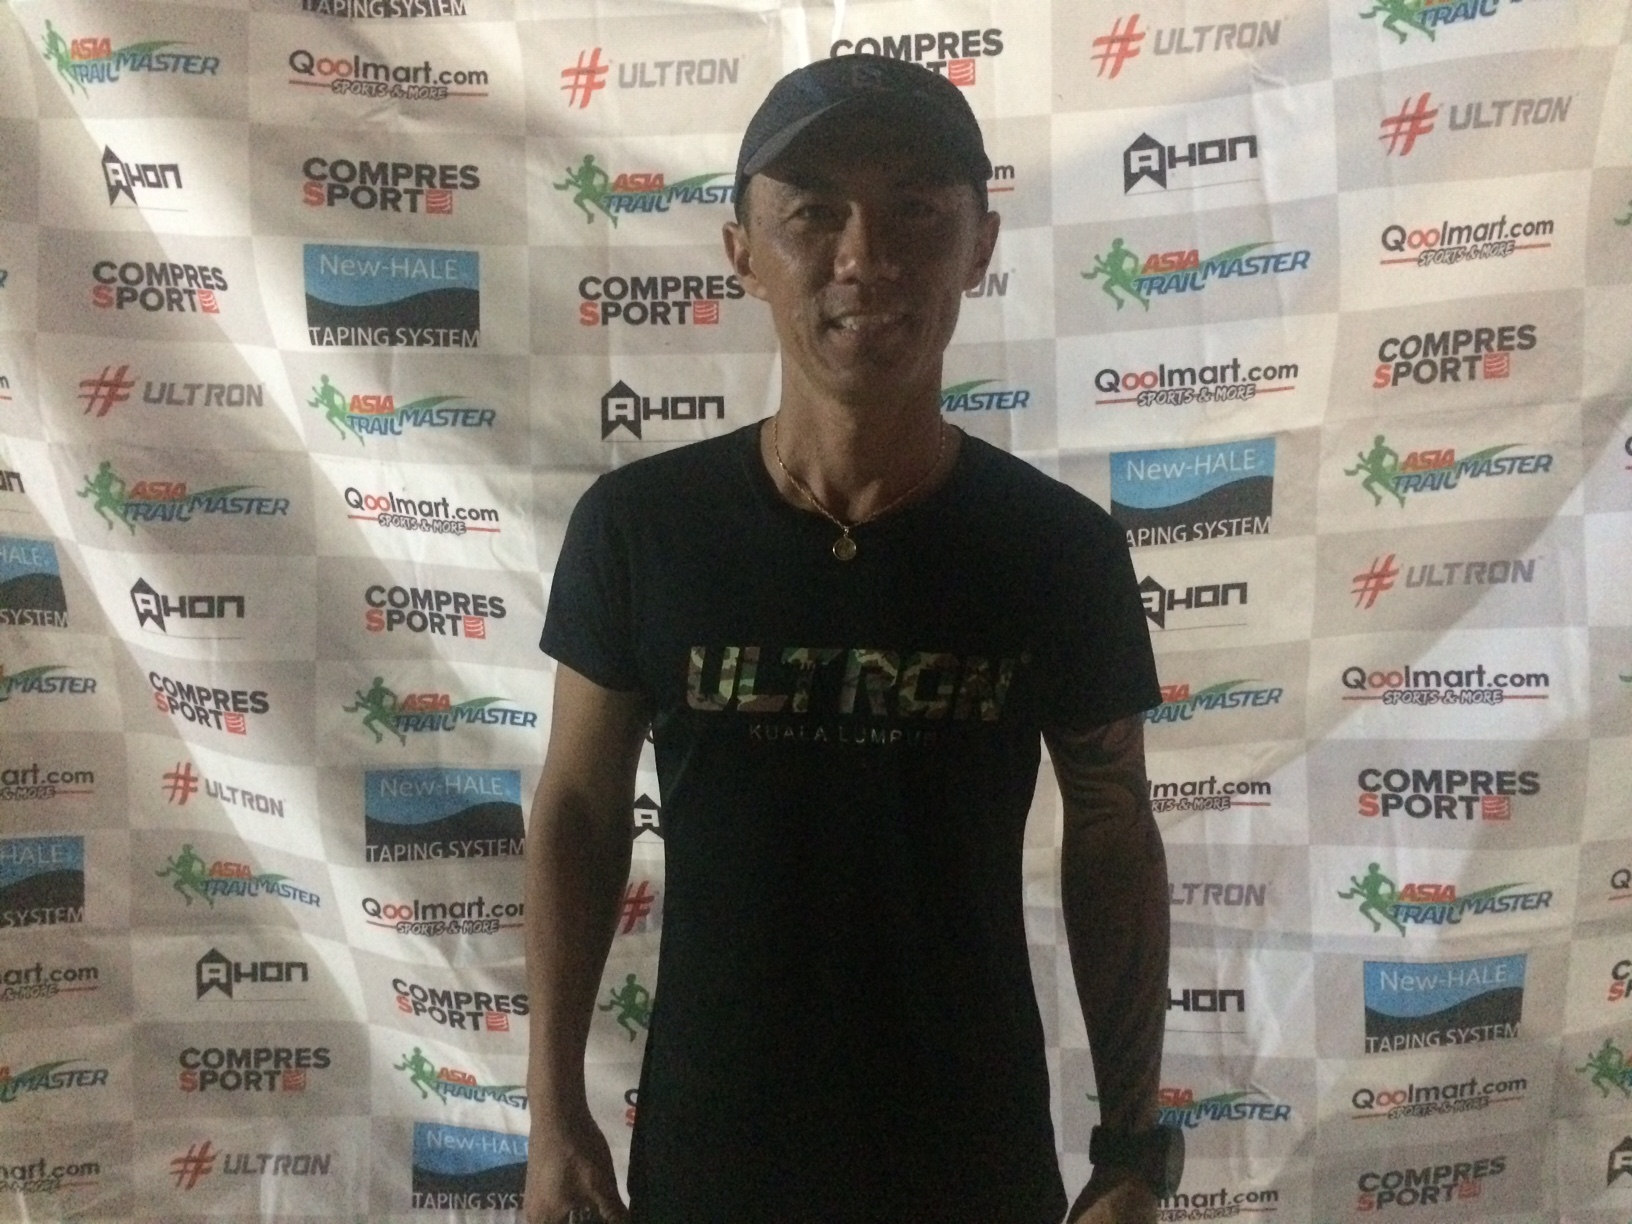 Second ATM race win of the season for Steven Oong in the 100k